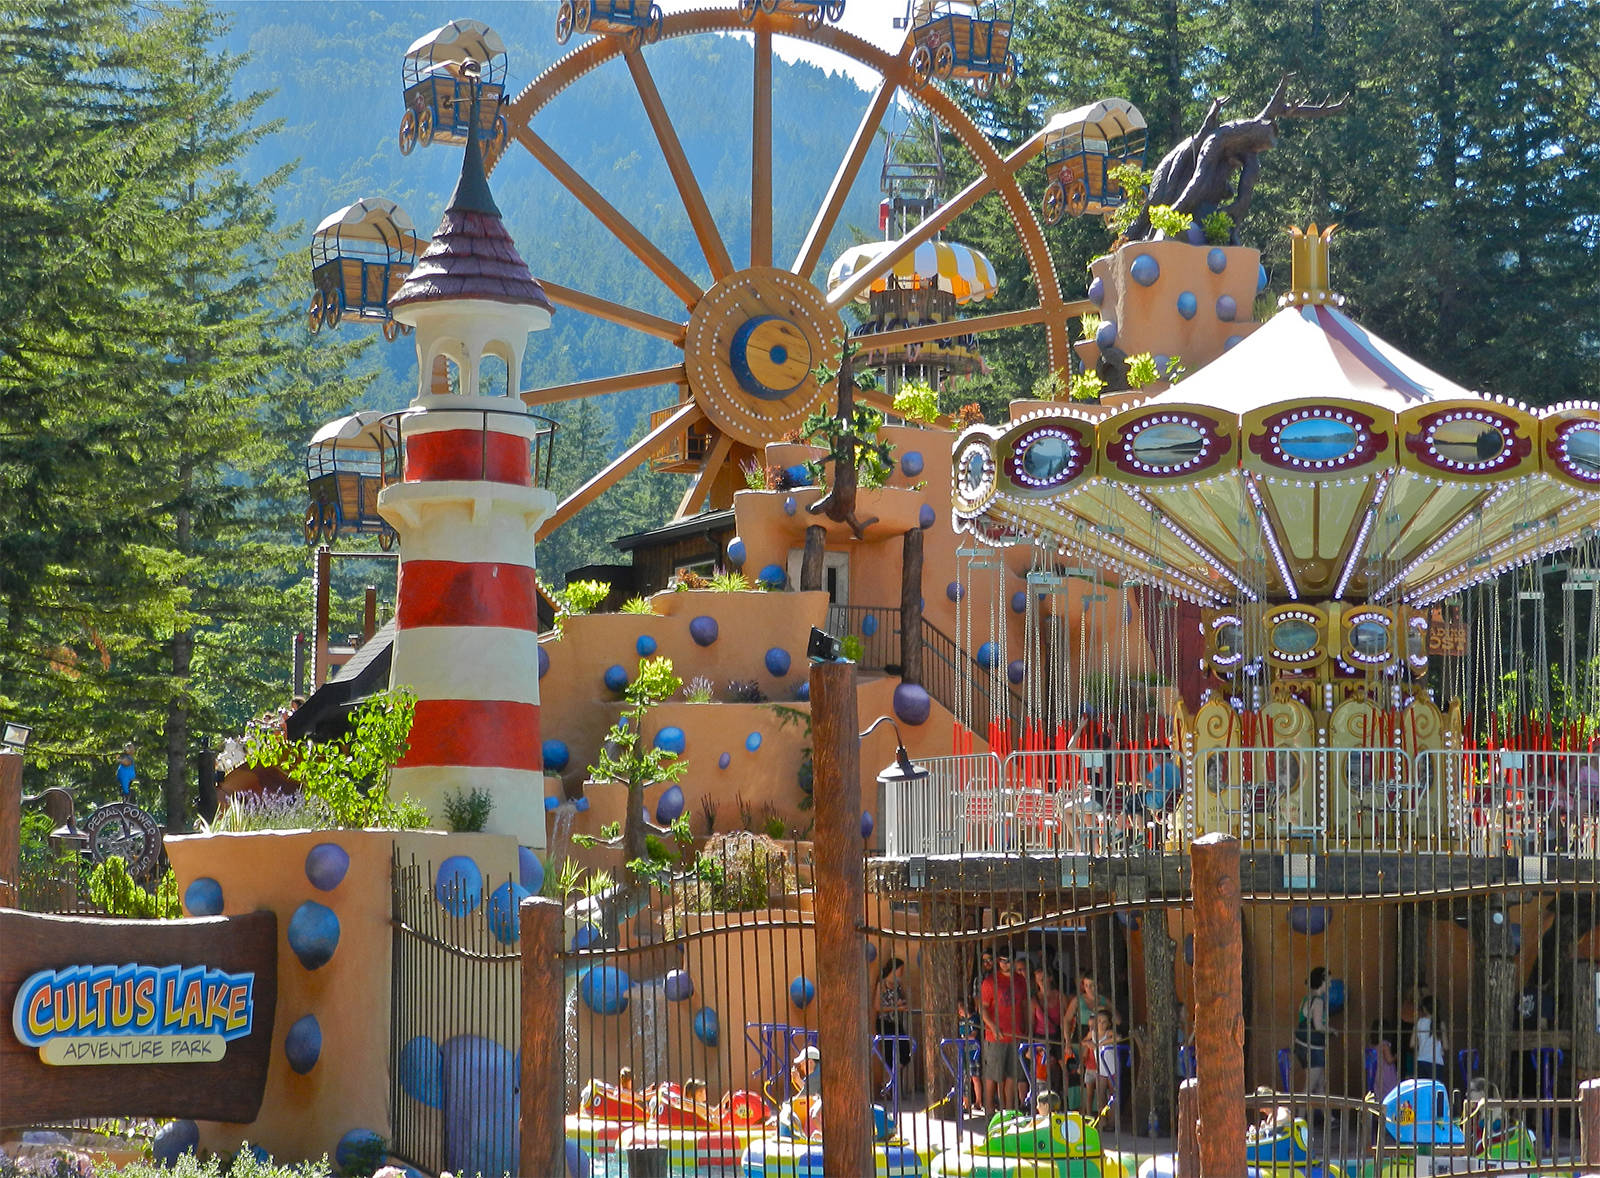 The Adventure Park is carefully designed so that every ride has its own character.